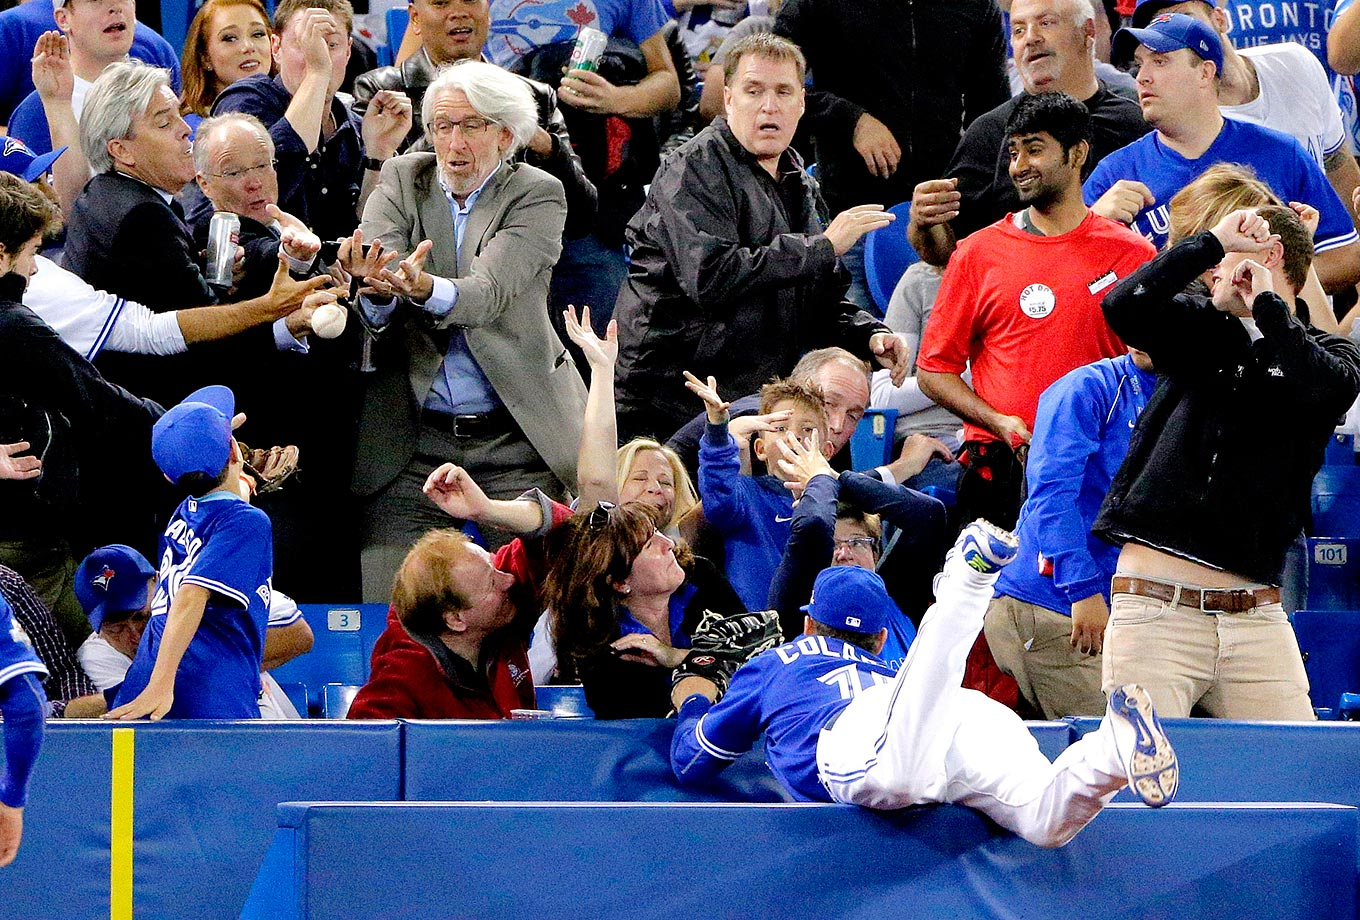 Chris Colabello of the Toronto Blue Jays misses this foul ball against the Royals.